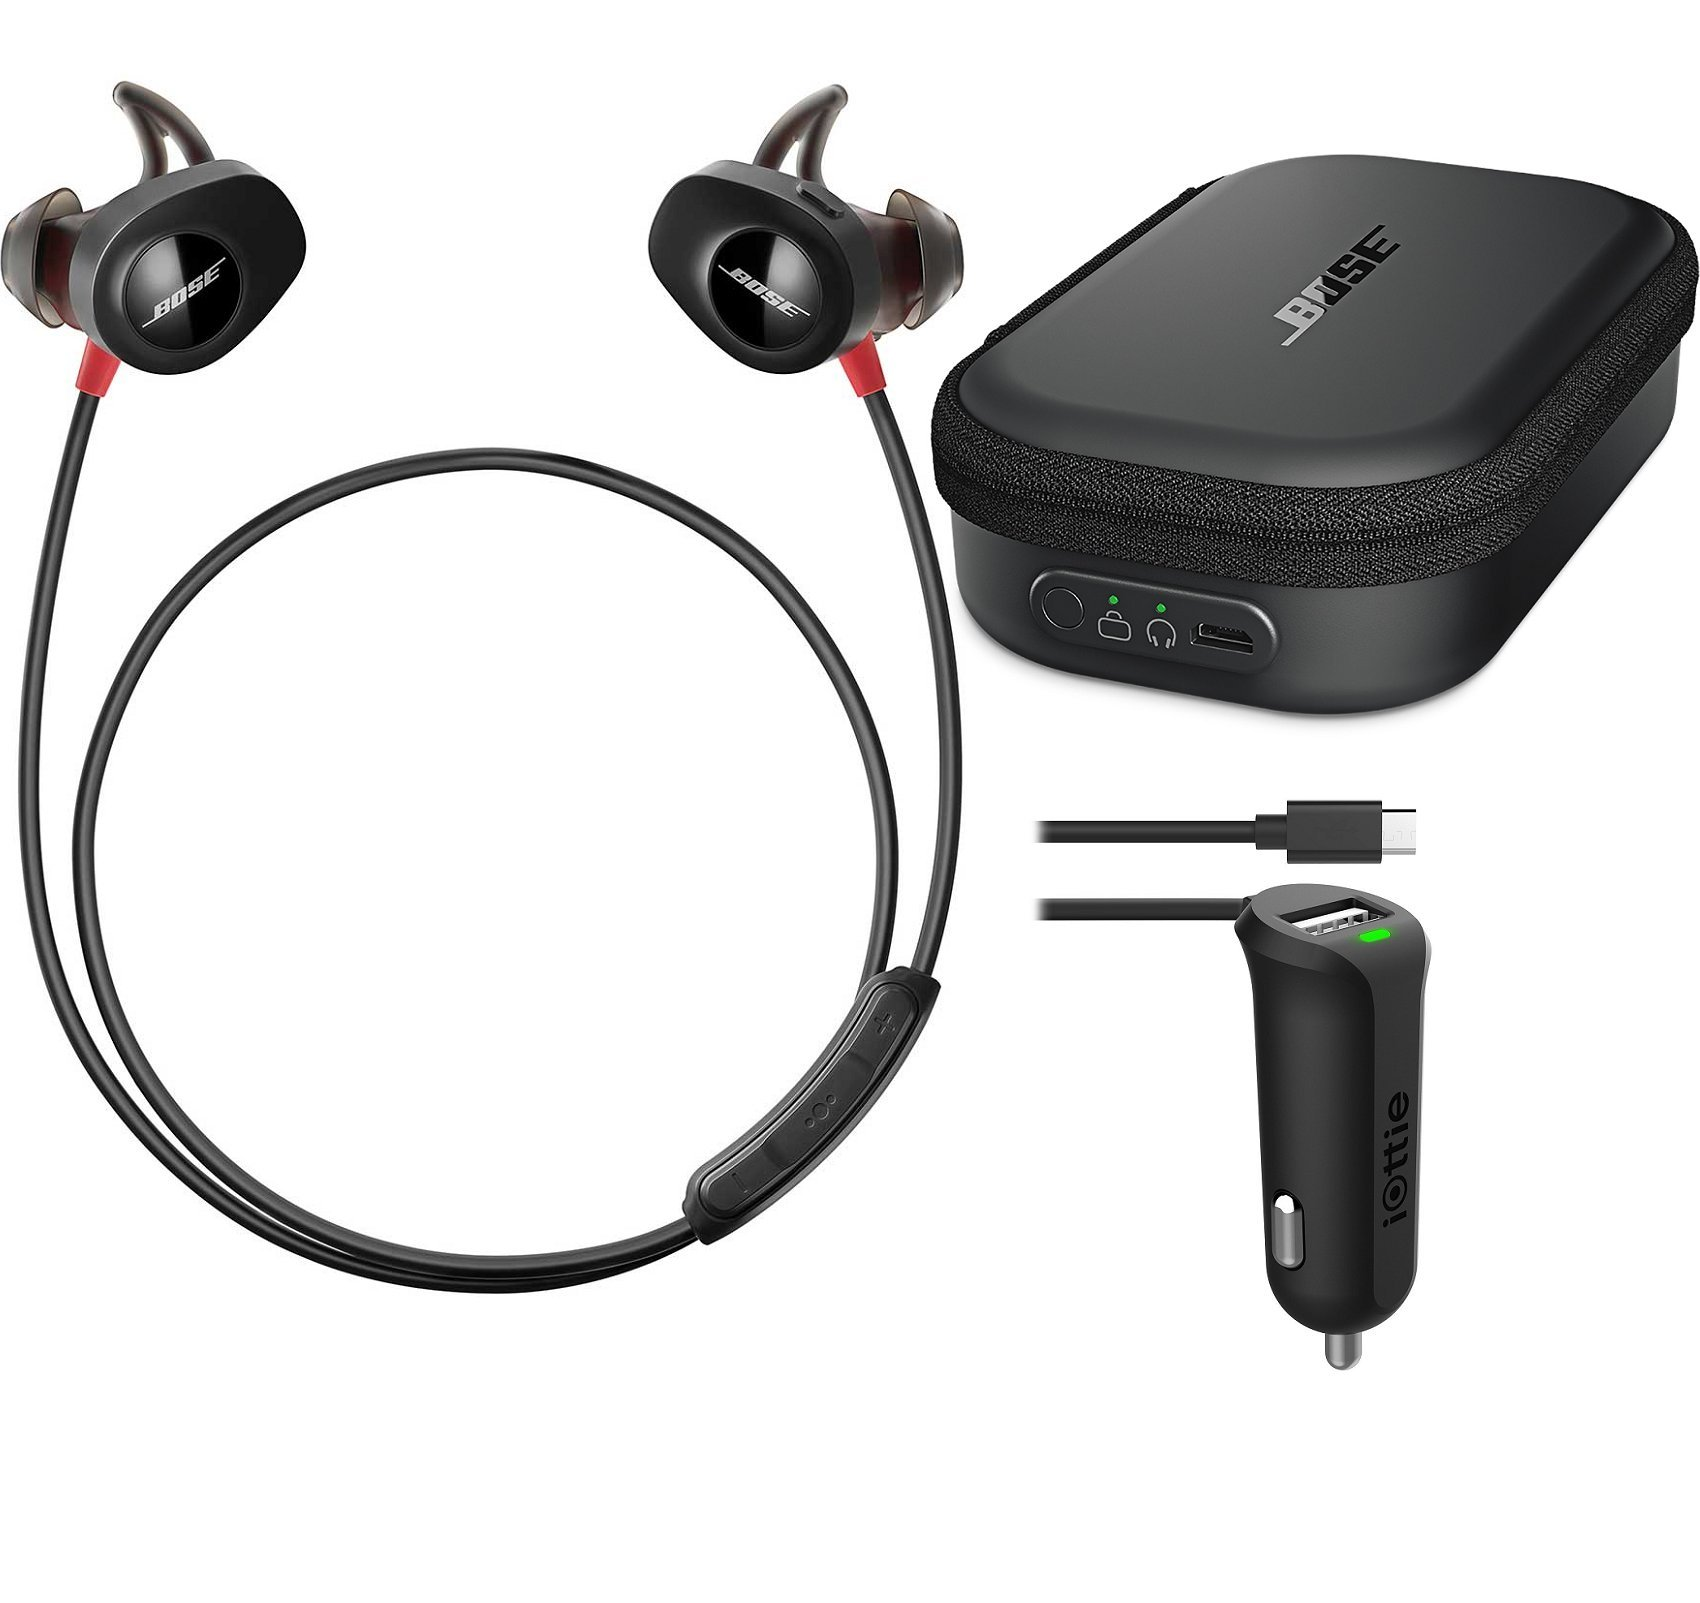 Bose SoundSport Pulse Sport Heart Rate Bluetooth Wireless In-Ear Headphone Bundle with Bose Charging Case & iOttie RapidVolt Micro USB Car Charger by Bose